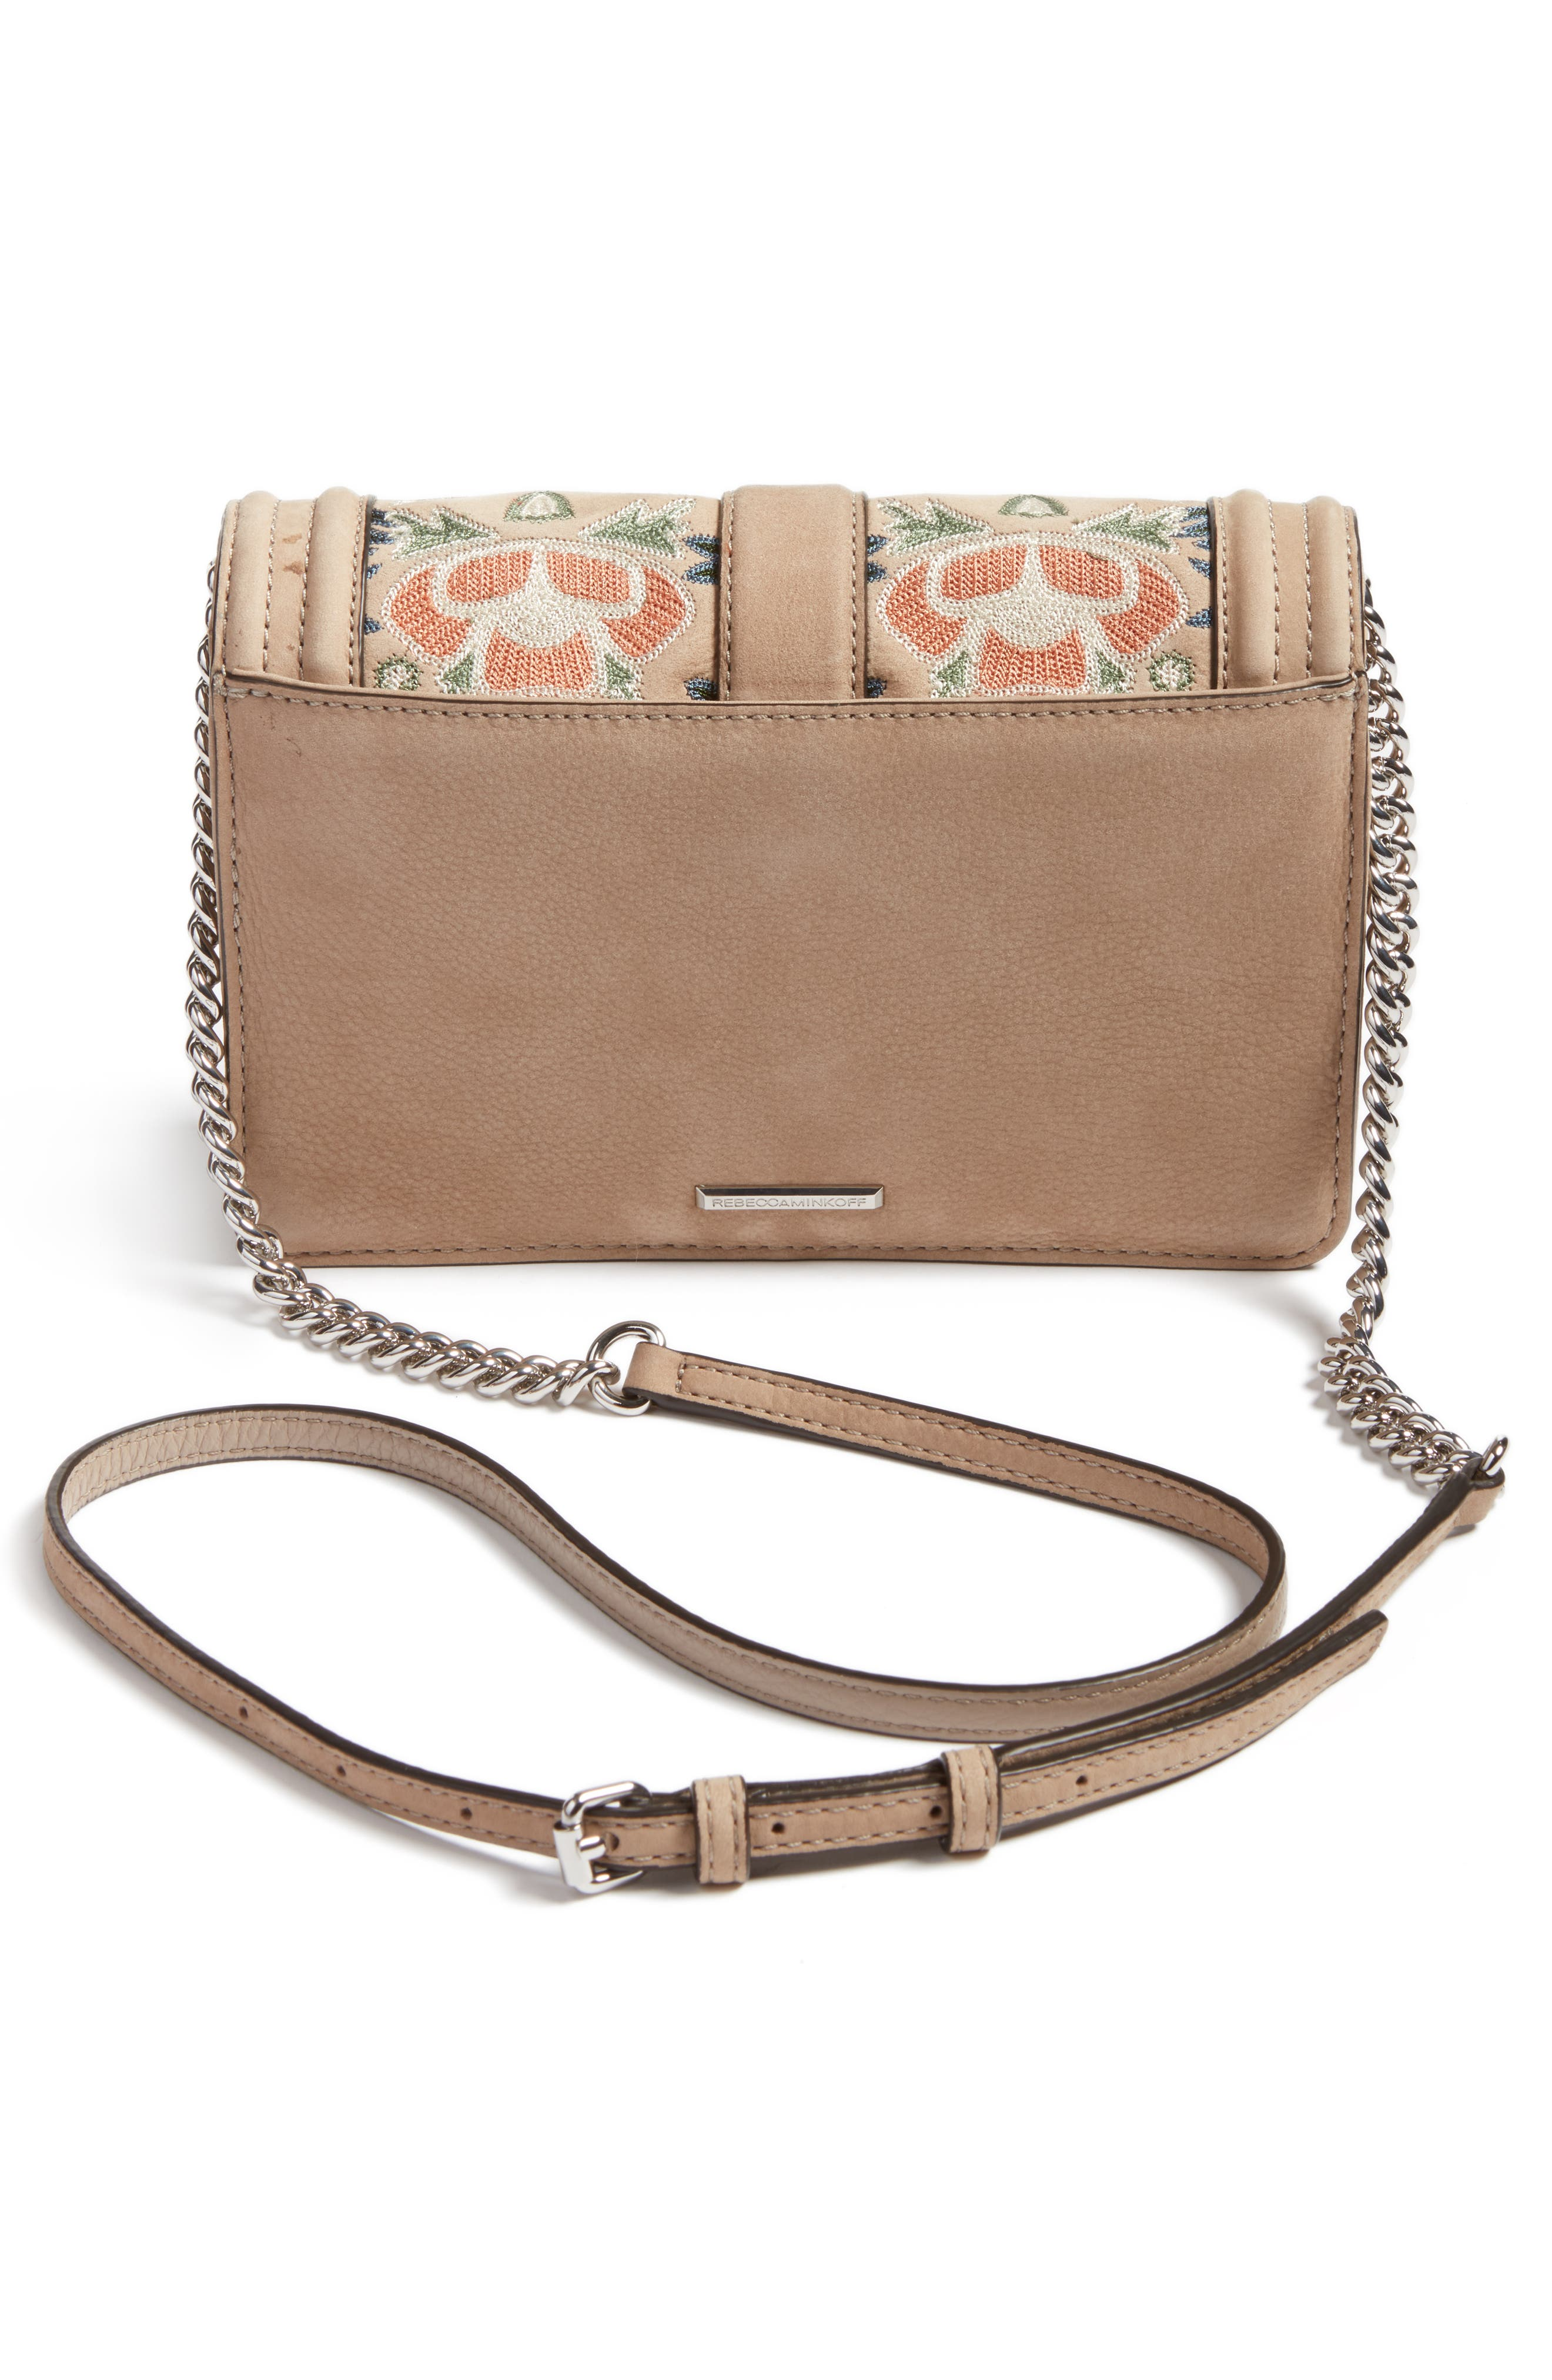 REBECCA MINKOFF, Small Love Embroidered Nubuck Crossbody Bag, Alternate thumbnail 3, color, 250